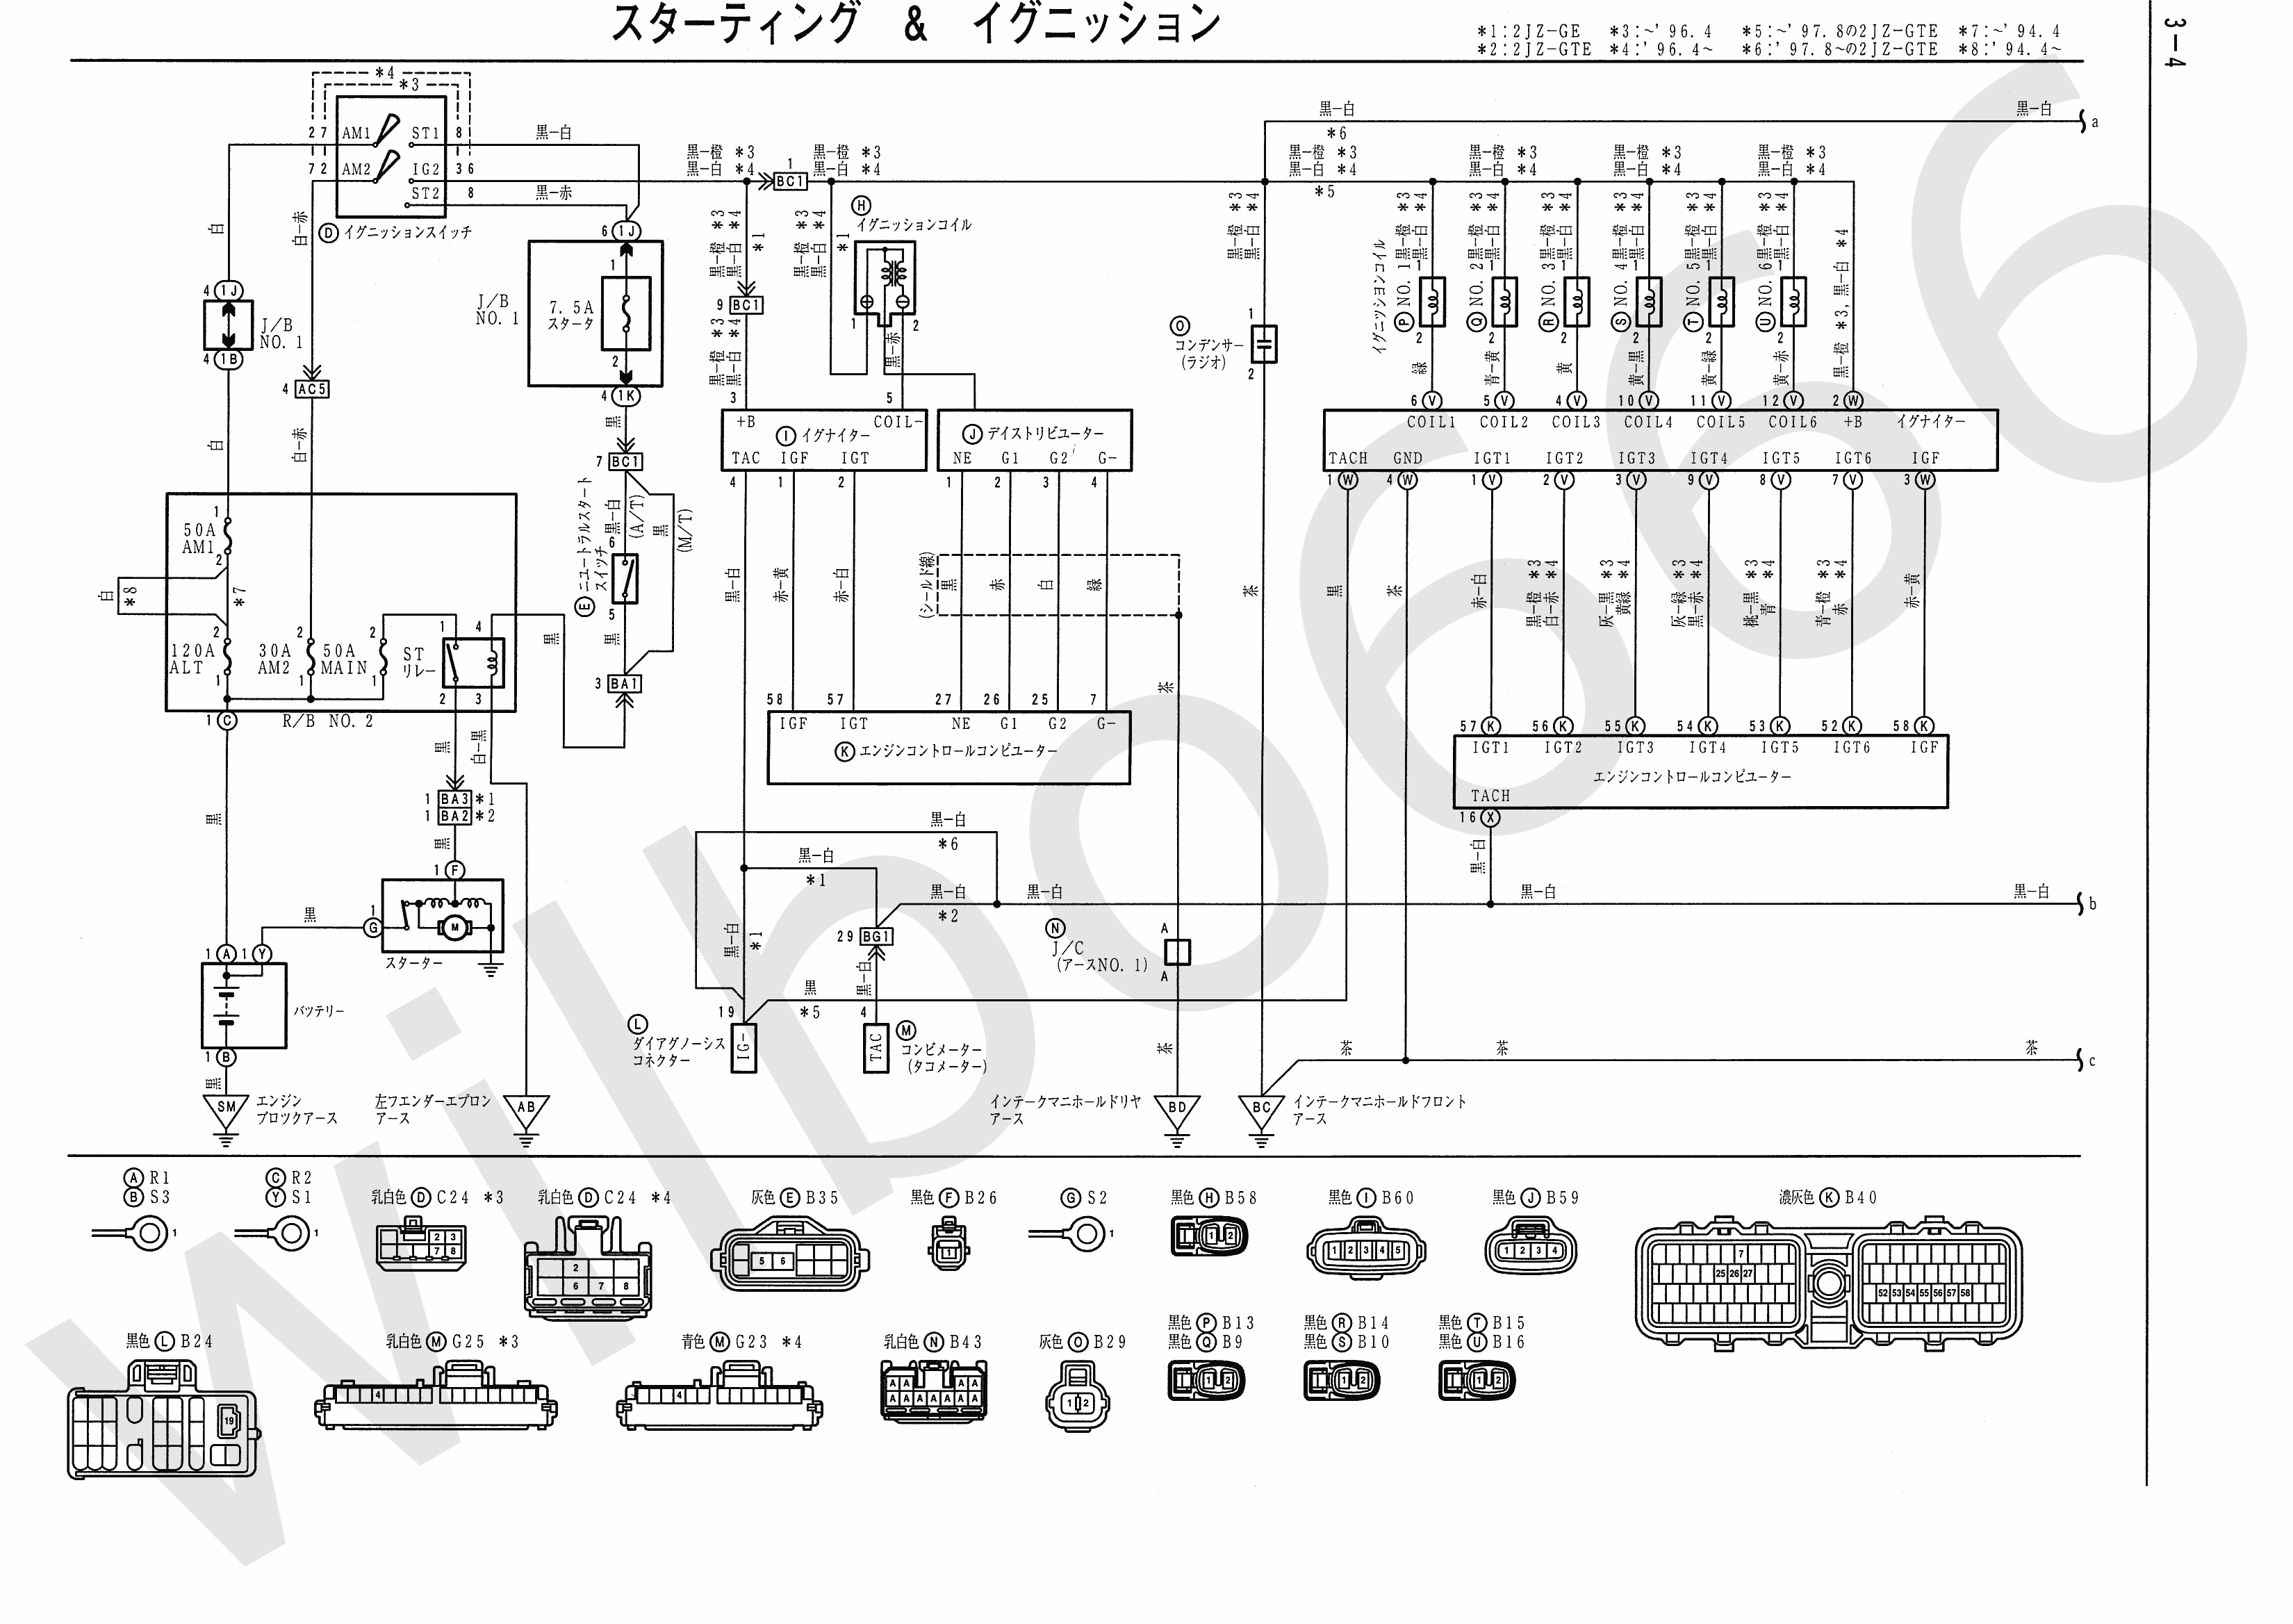 JZA80 Electrical Wiring Diagram 6742505 3 4?ssl\\\\\\\\\\\\\\\\\\\\\\\\\\\\\\\\\\\\\\\\\\\\\\\\\\\\\\\\\\\\\\\\\\\\\\\\\\\\\\\\\\\\\\\\\\\\\\\\\\\\\\\\\\\\\\\\\\\\\\\\\\\\=1 amazing 3sgte wiring diagram gallery wiring schematic tvservice us 3sge beams wiring diagram at gsmportal.co